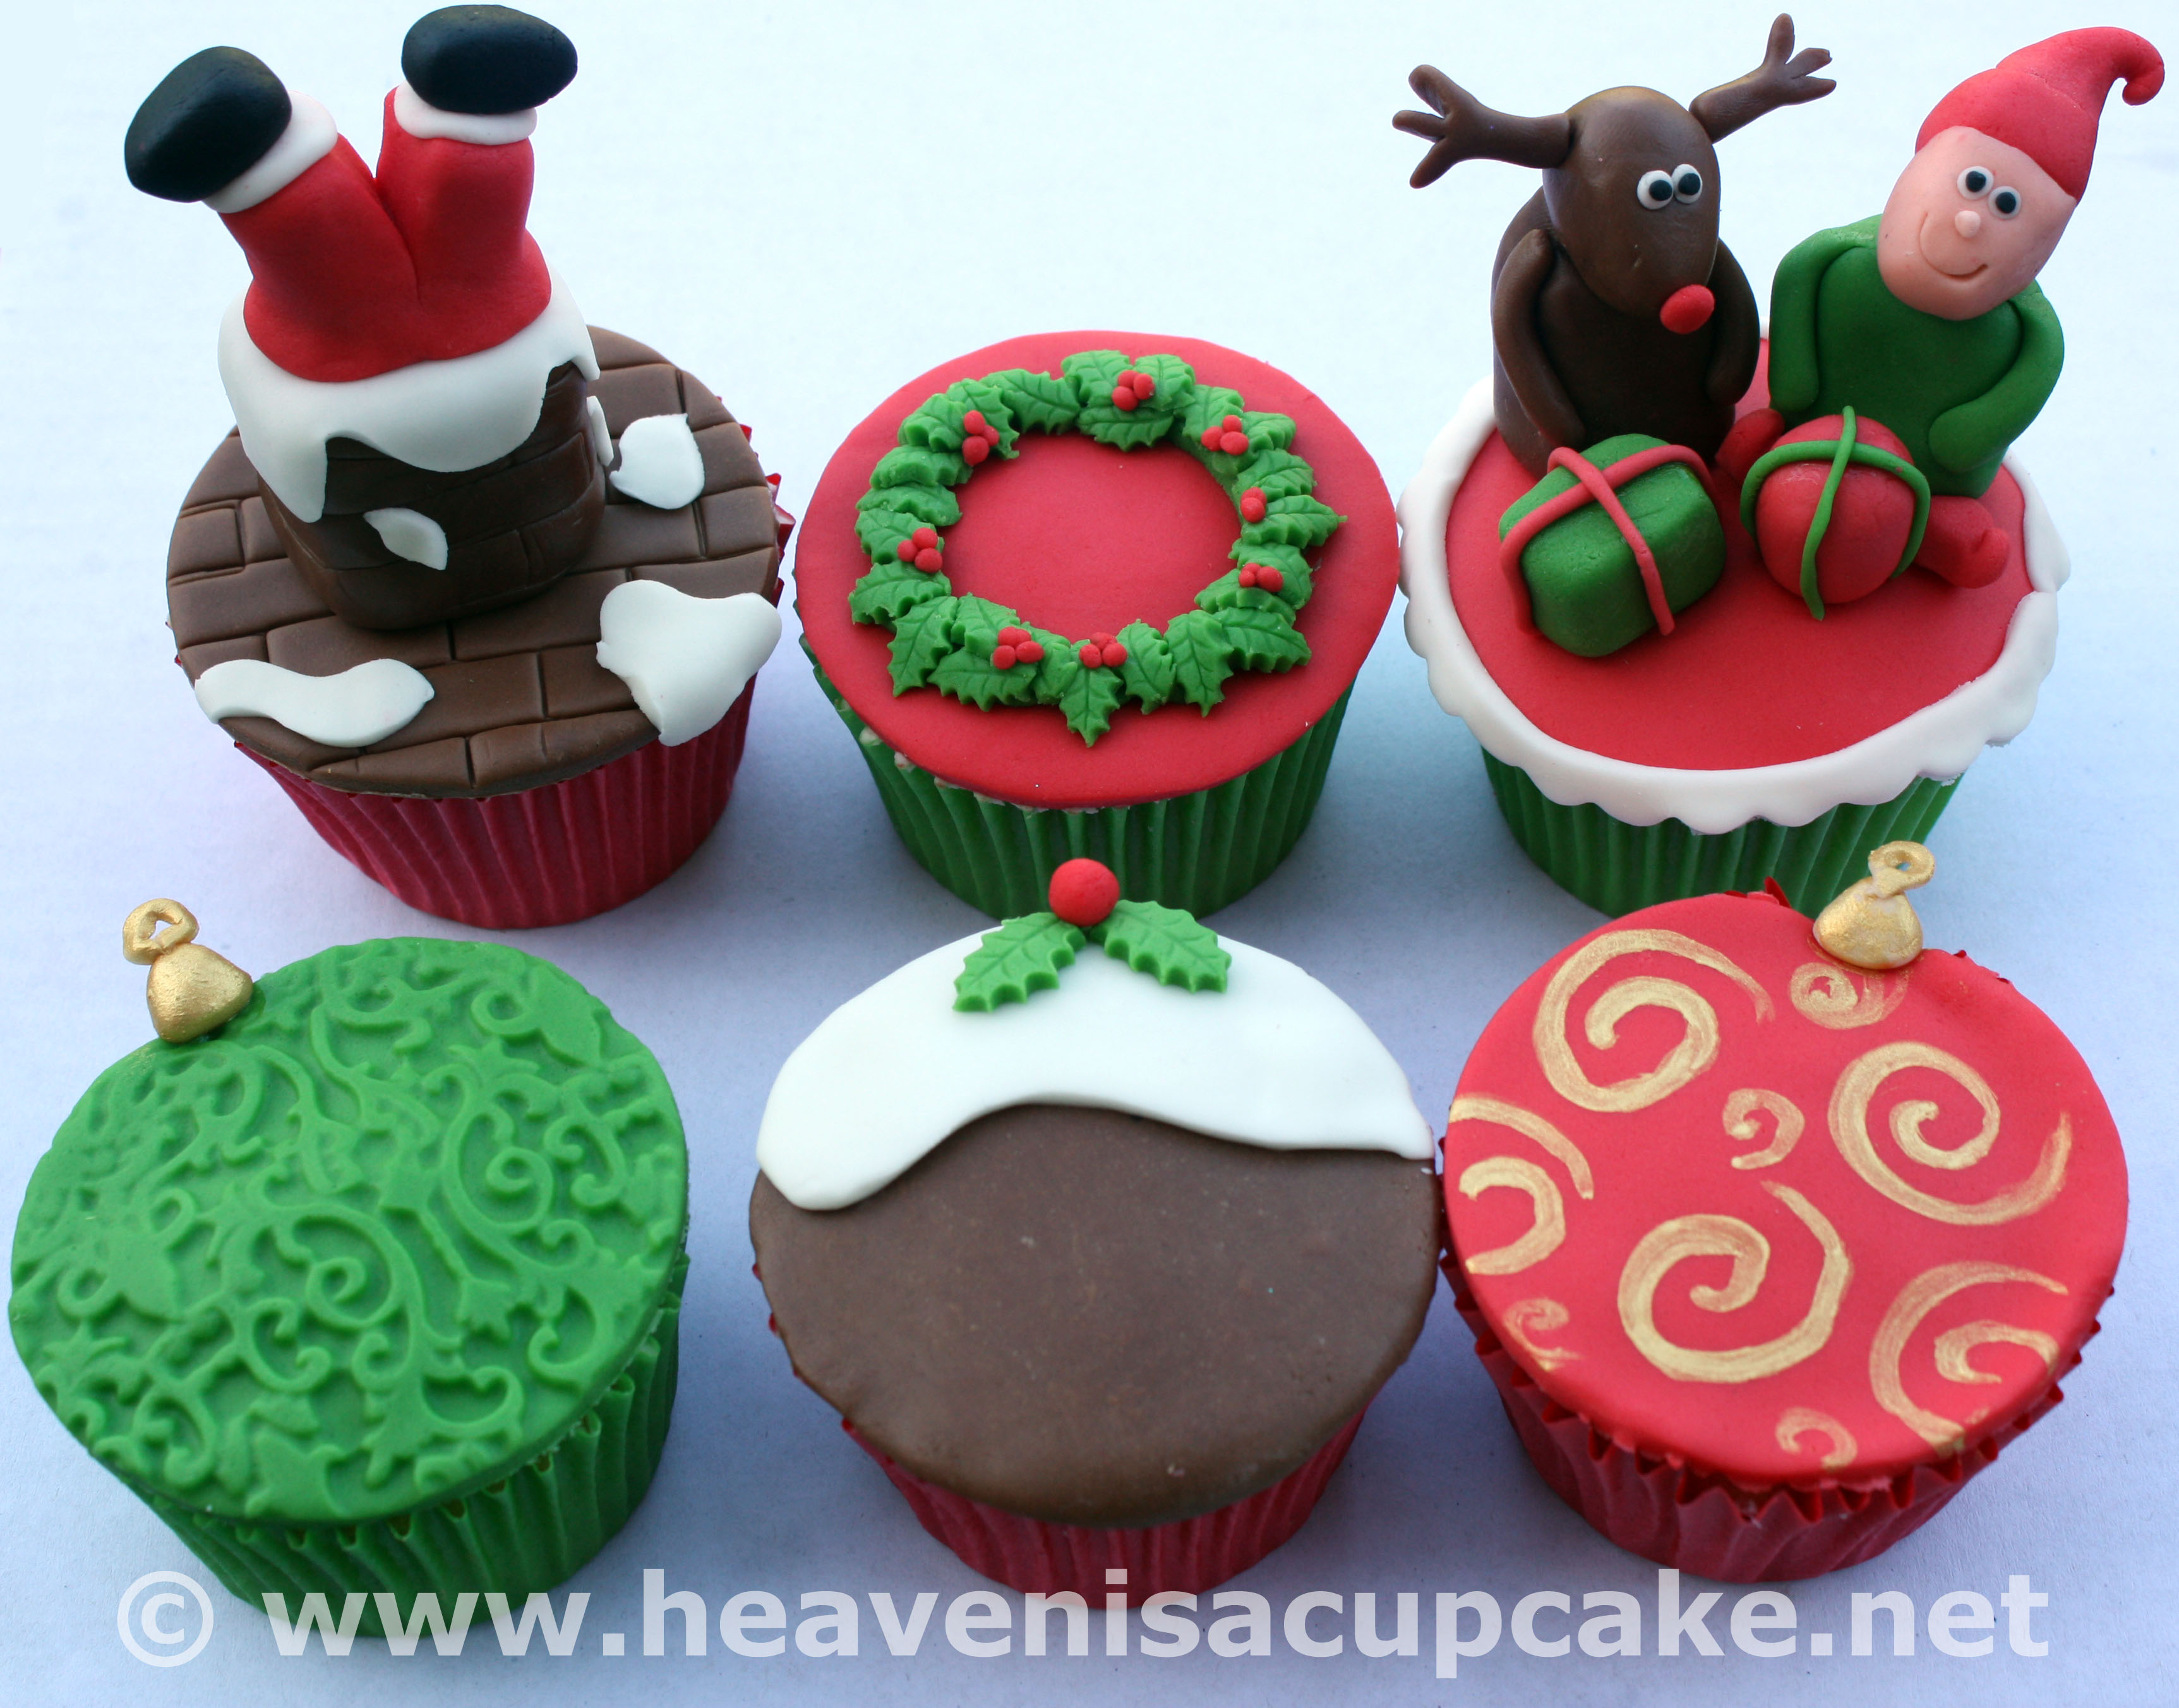 Christmas is Coming! - Heaven is a Cupcake - St Albans